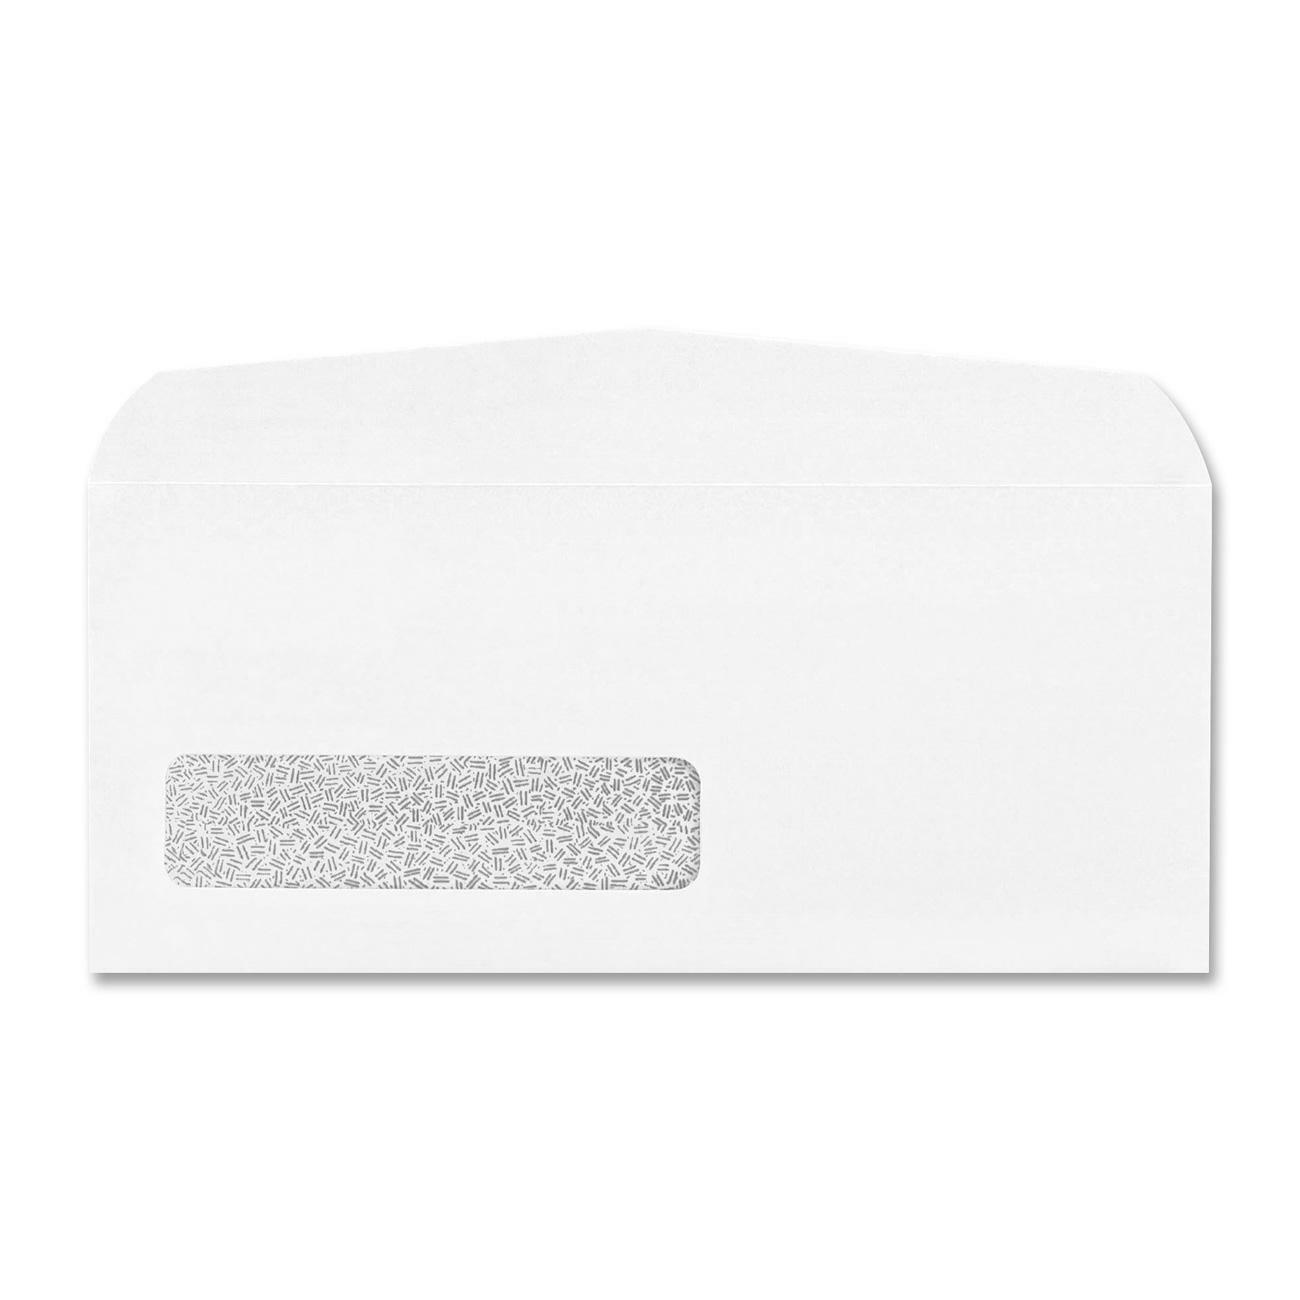 Kamloops office systems office supplies envelopes for Window envelopes